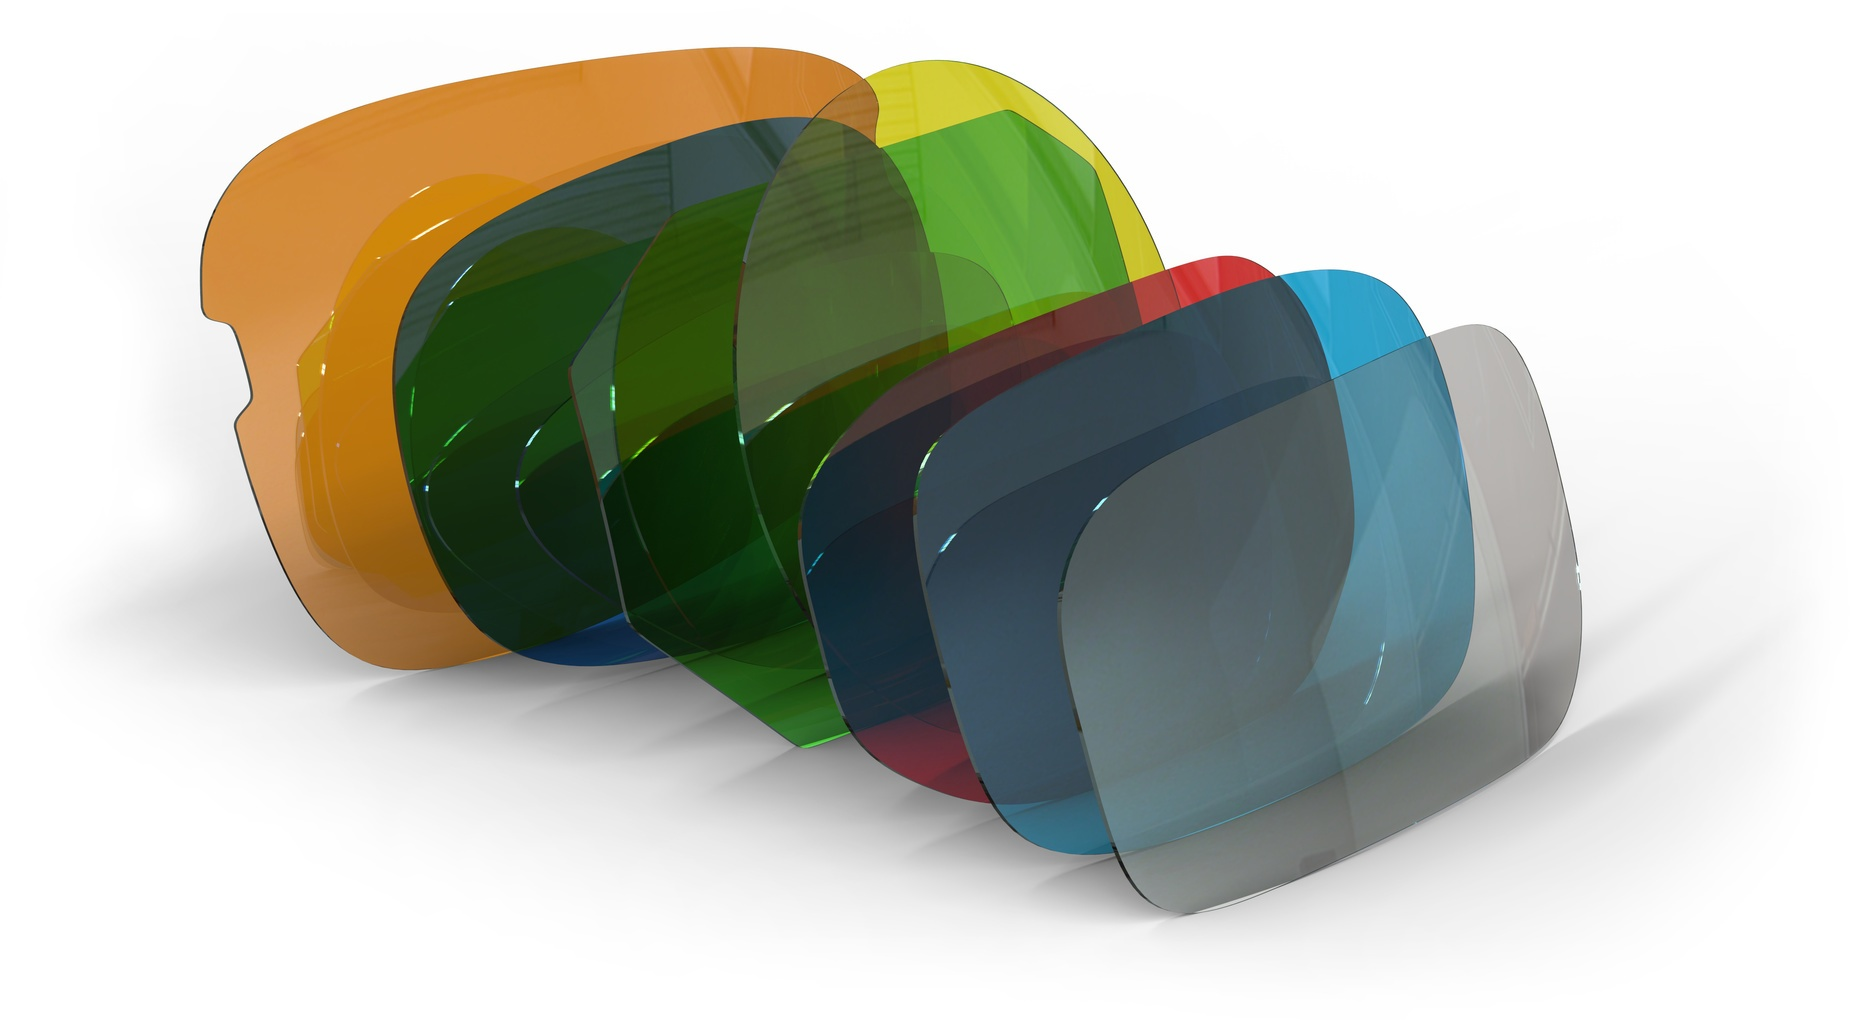 Glass lenses come in a variety of shapes and sizes, and the basket's design needed to reflect this.